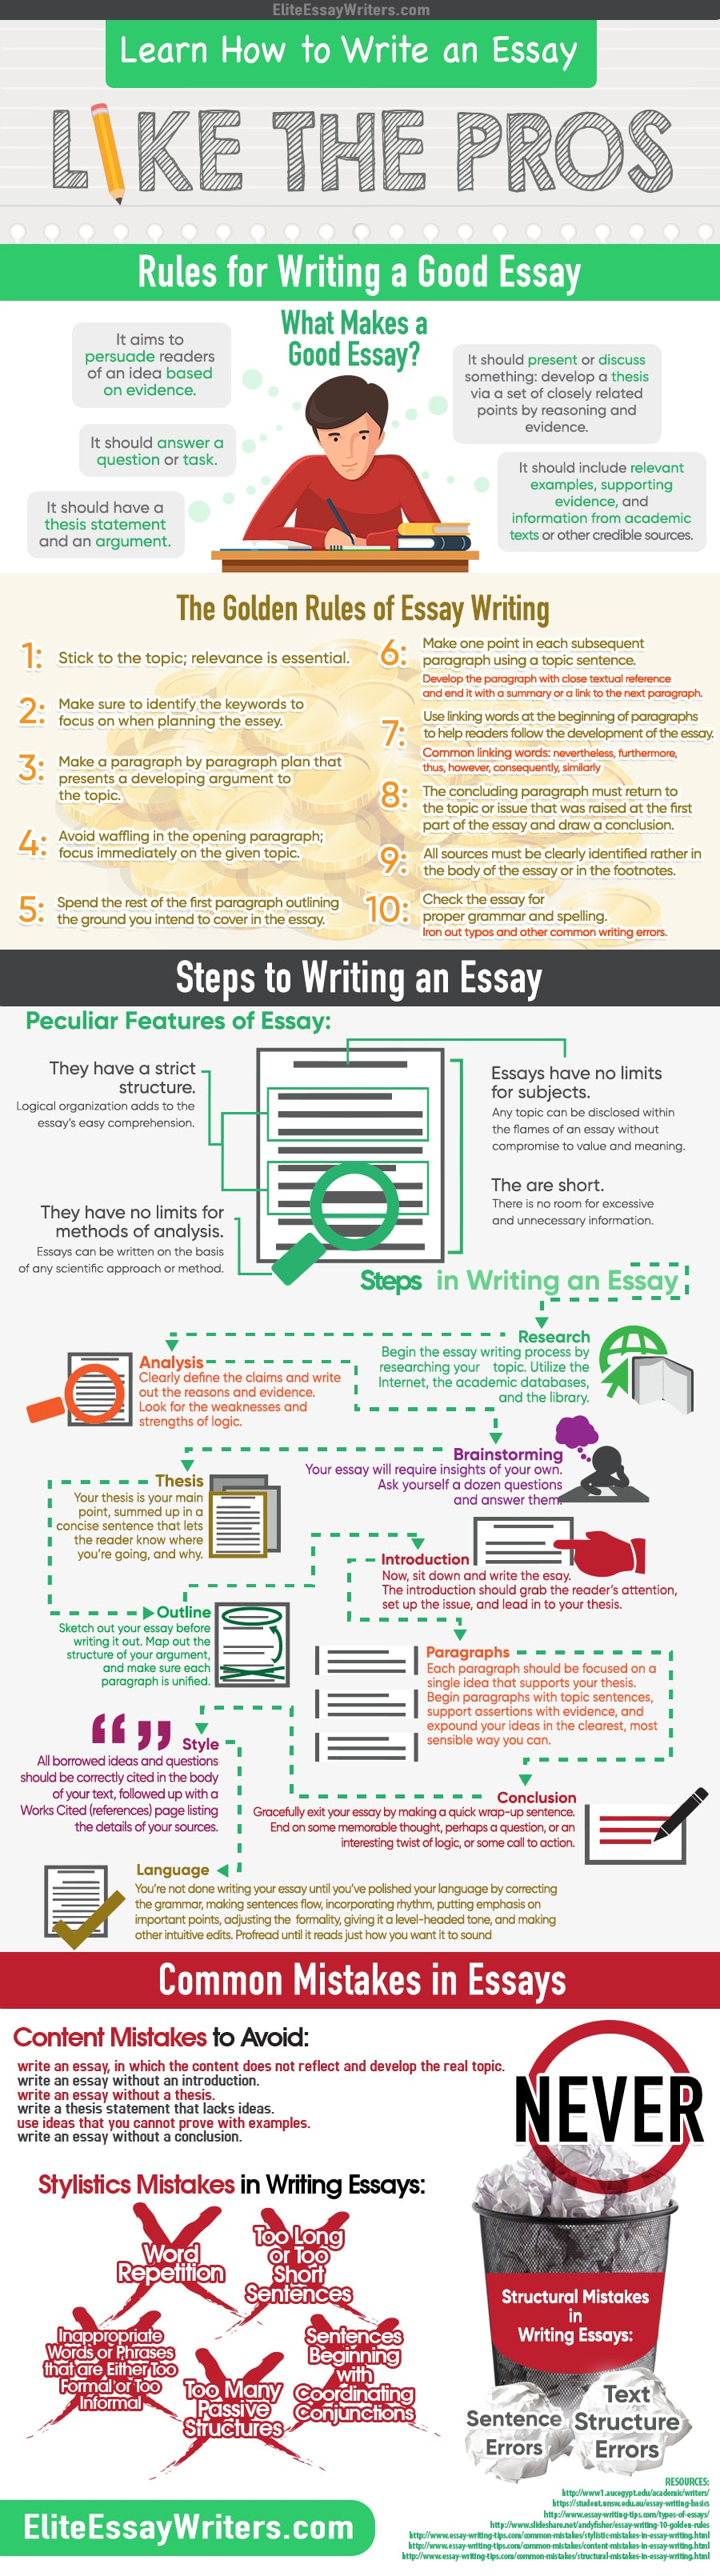 Custom essay research paper critique (where to buy a research paper online)